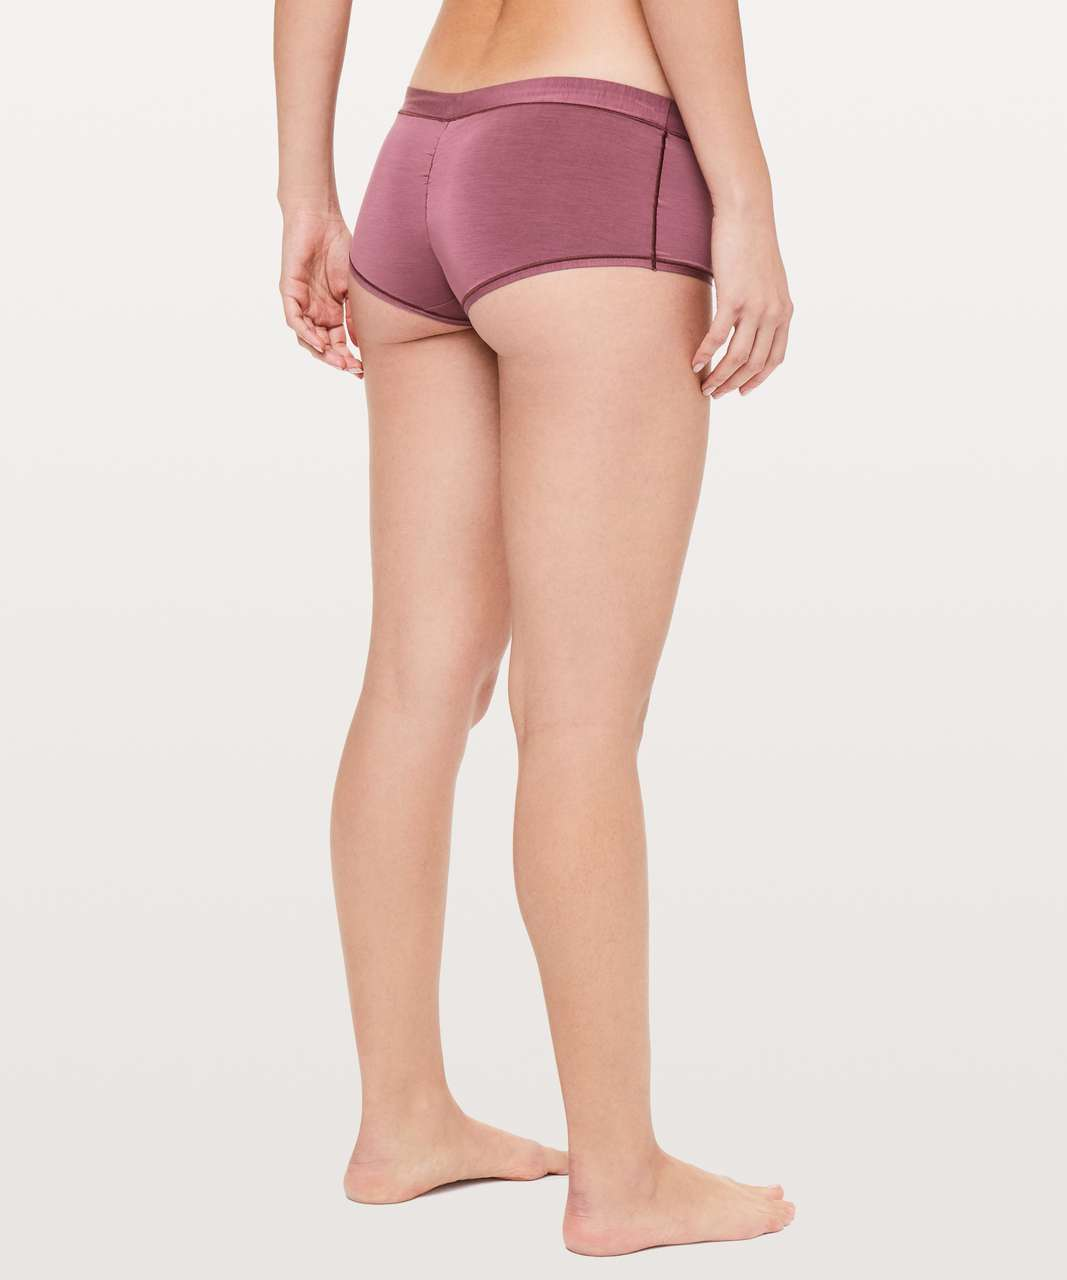 2f7192019 Lululemon Simply There Boyshort - Misty Merlot - lulu fanatics